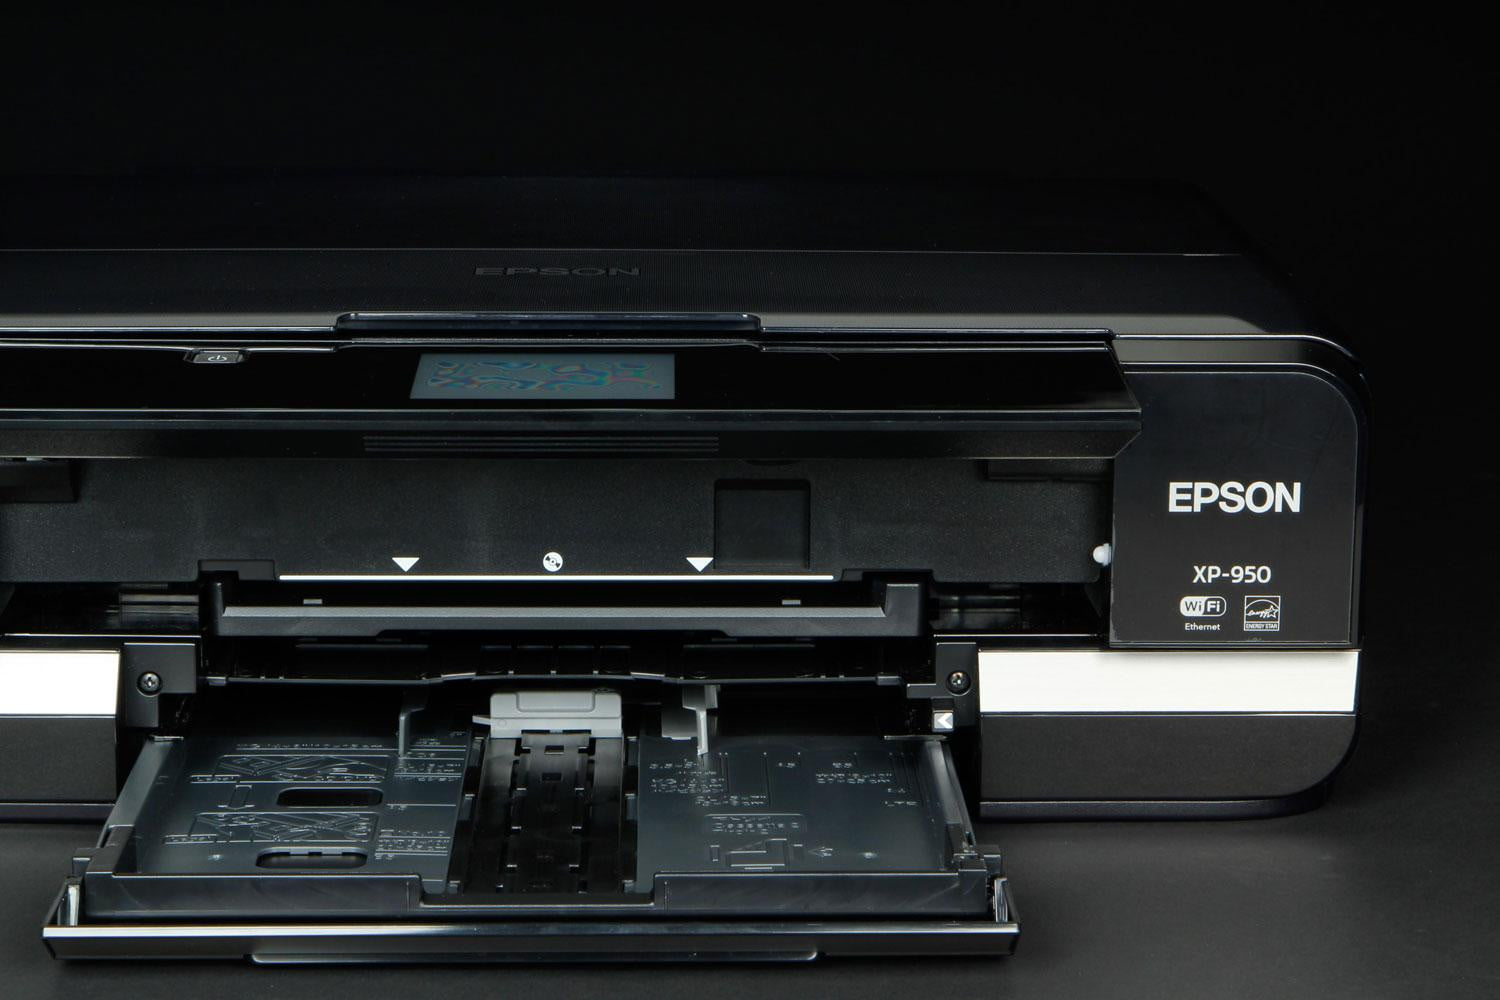 Service Manual Archives - Stampanti EpsonStampanti Epson Expression photo xp 950 review